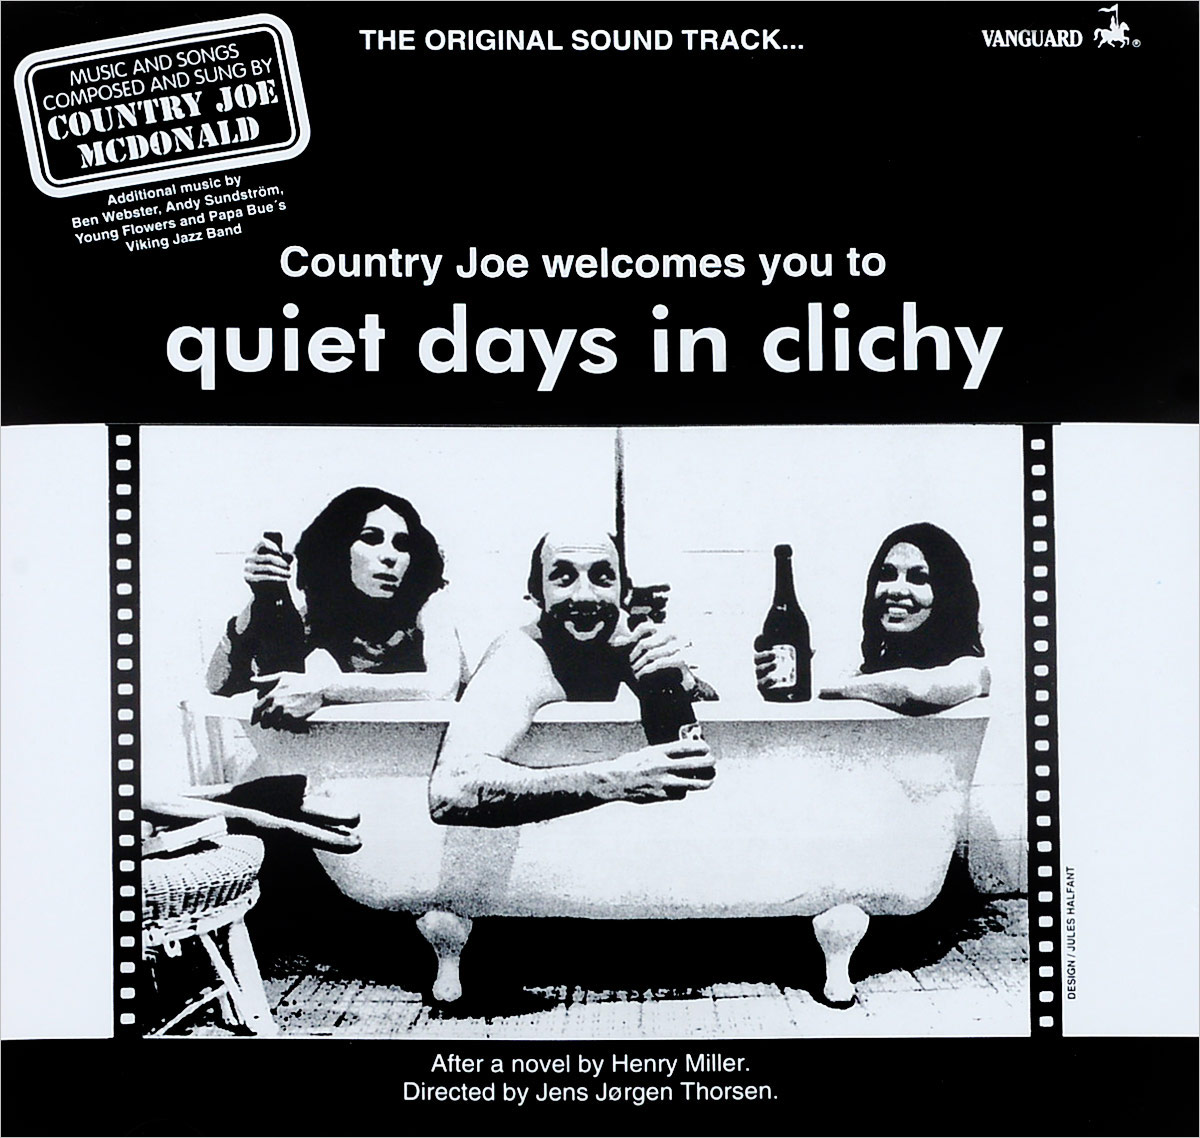 Country Joe McDonald Country Joe Mcdonald. Quiet Days In Clichy Soundtrack органайзер для хранения носков sima land цвет белый на 20 пар